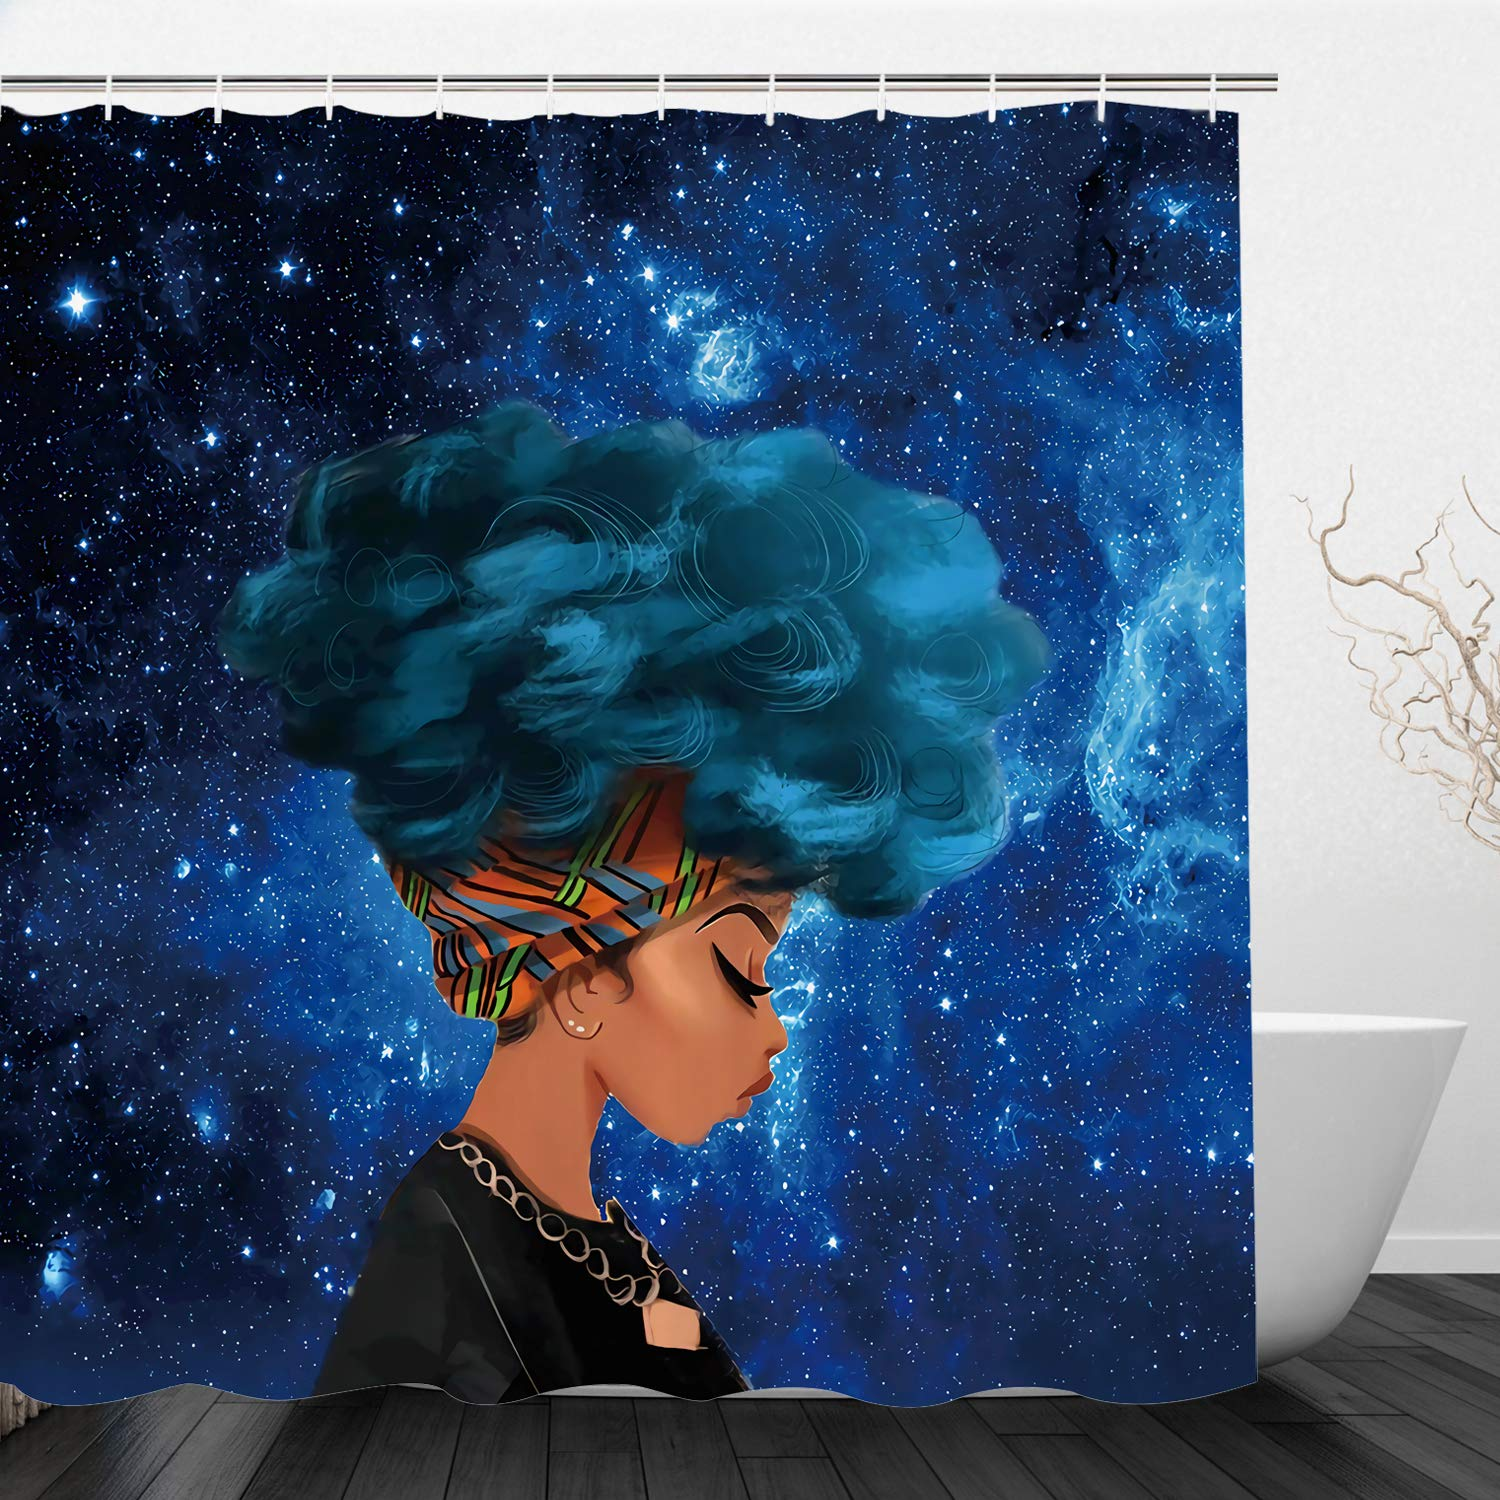 Afro Female Shower Curtain Bathroom Hippie Waterproof Curtain Decor With Hook